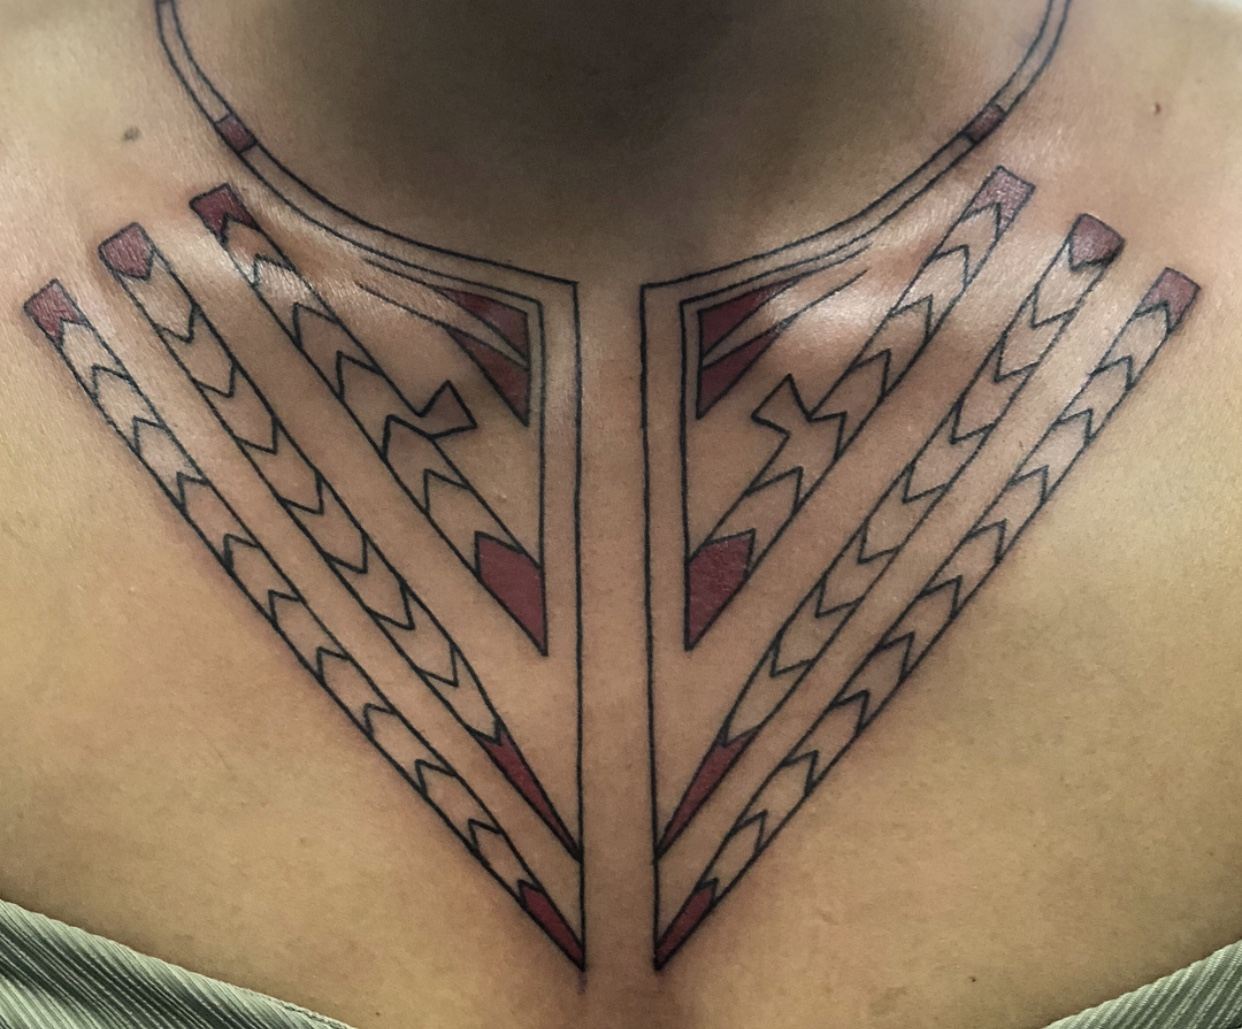 A  custom chest piece  designed by Toby Sicks that was made to symbolize spirituality and ceremony for a customer undergoing a healing journey. According to Sicks, the piece symbolizes the customer's cultural identity of the Kanyen'kehà:ka Mohawk nation. Learn more about this custom tattoo in this  video  by APTN. (Photo courtesy of   Toby Sicks   via Instagram)